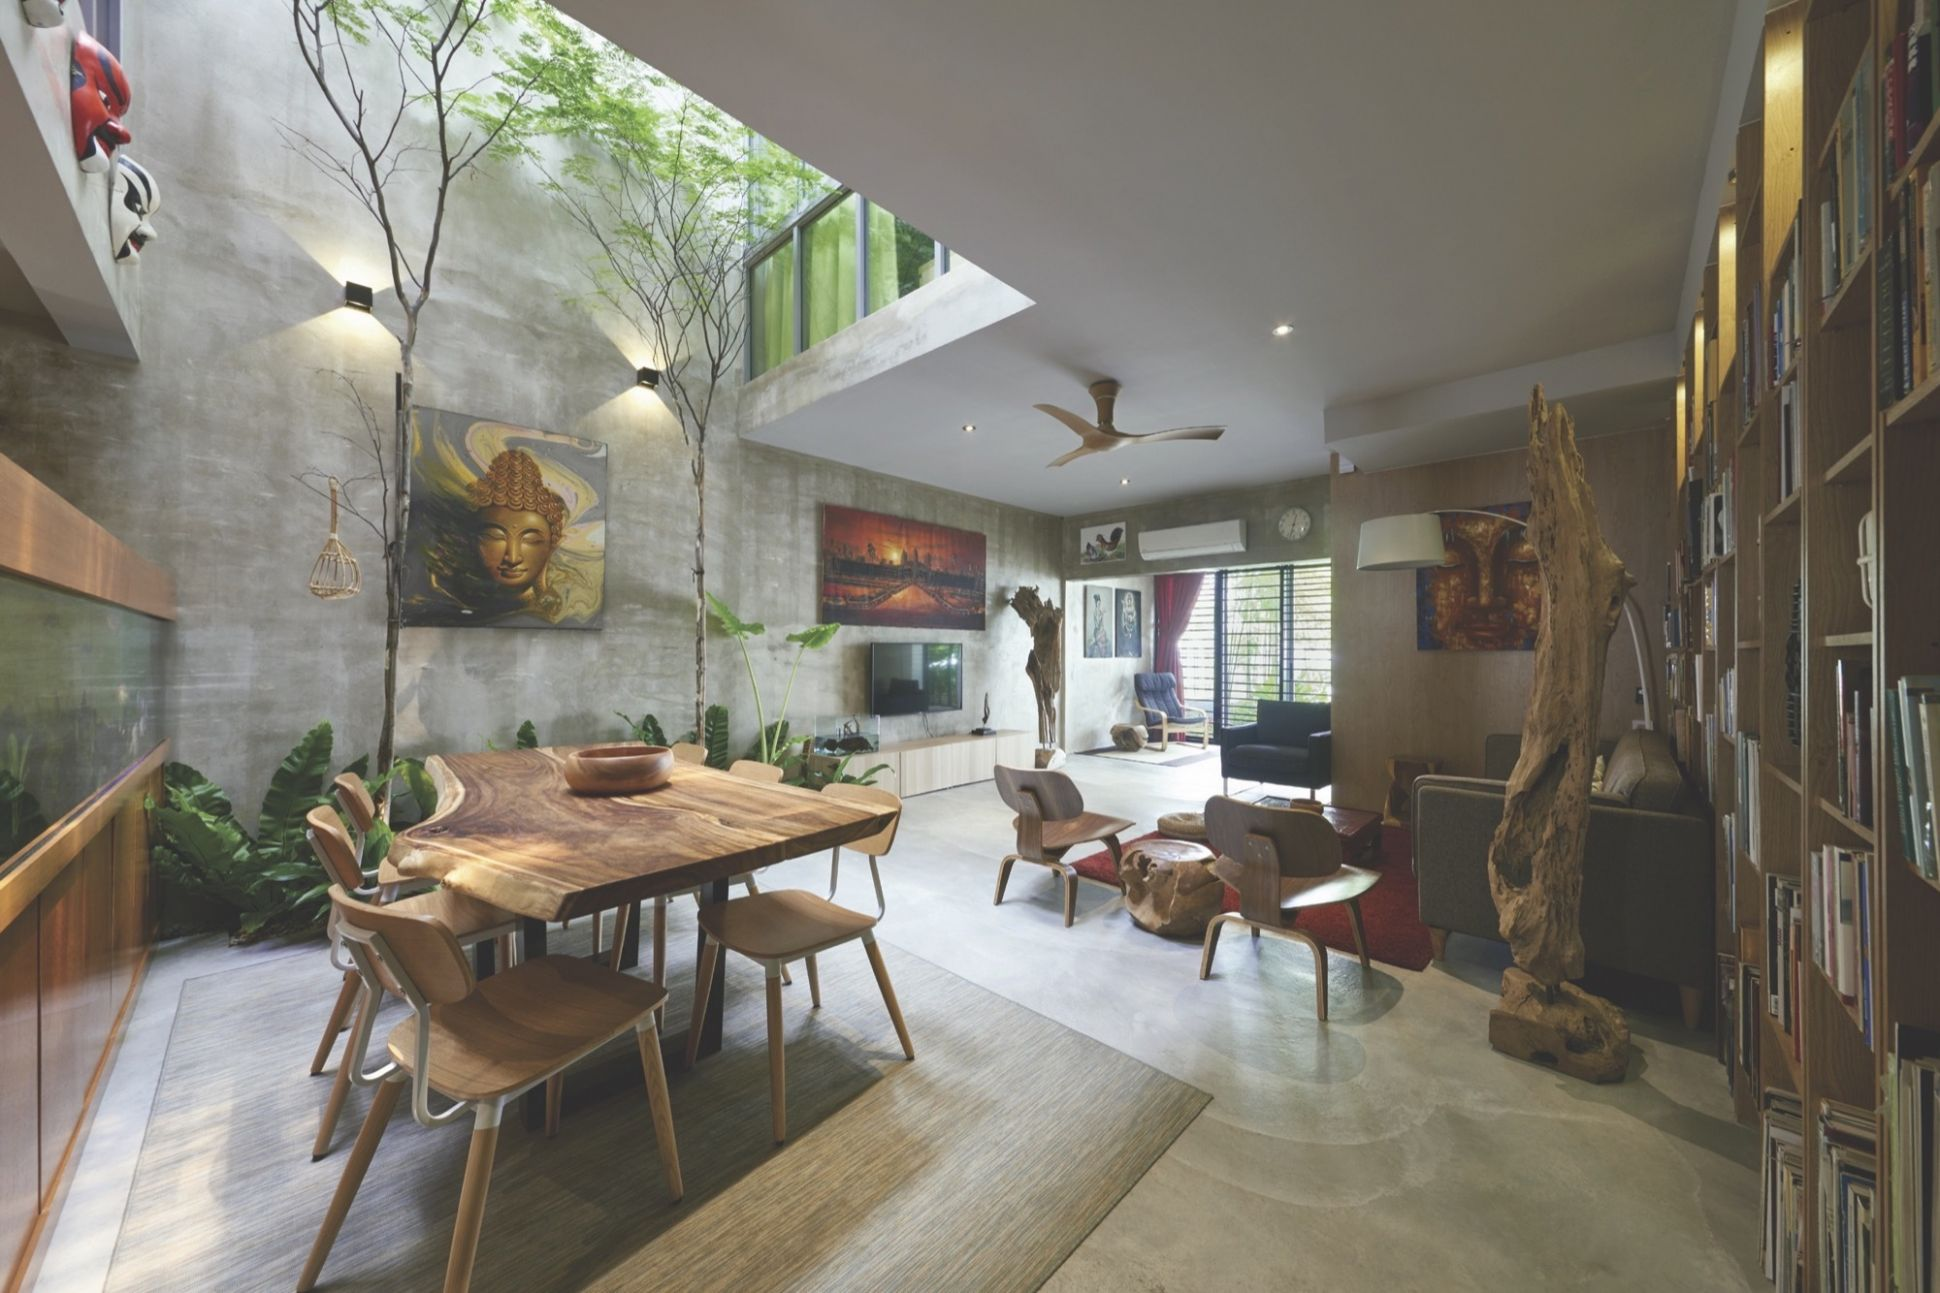 Terrace House Renovation / O11 Design Atelier | ArchDaily - house renovation inspiration